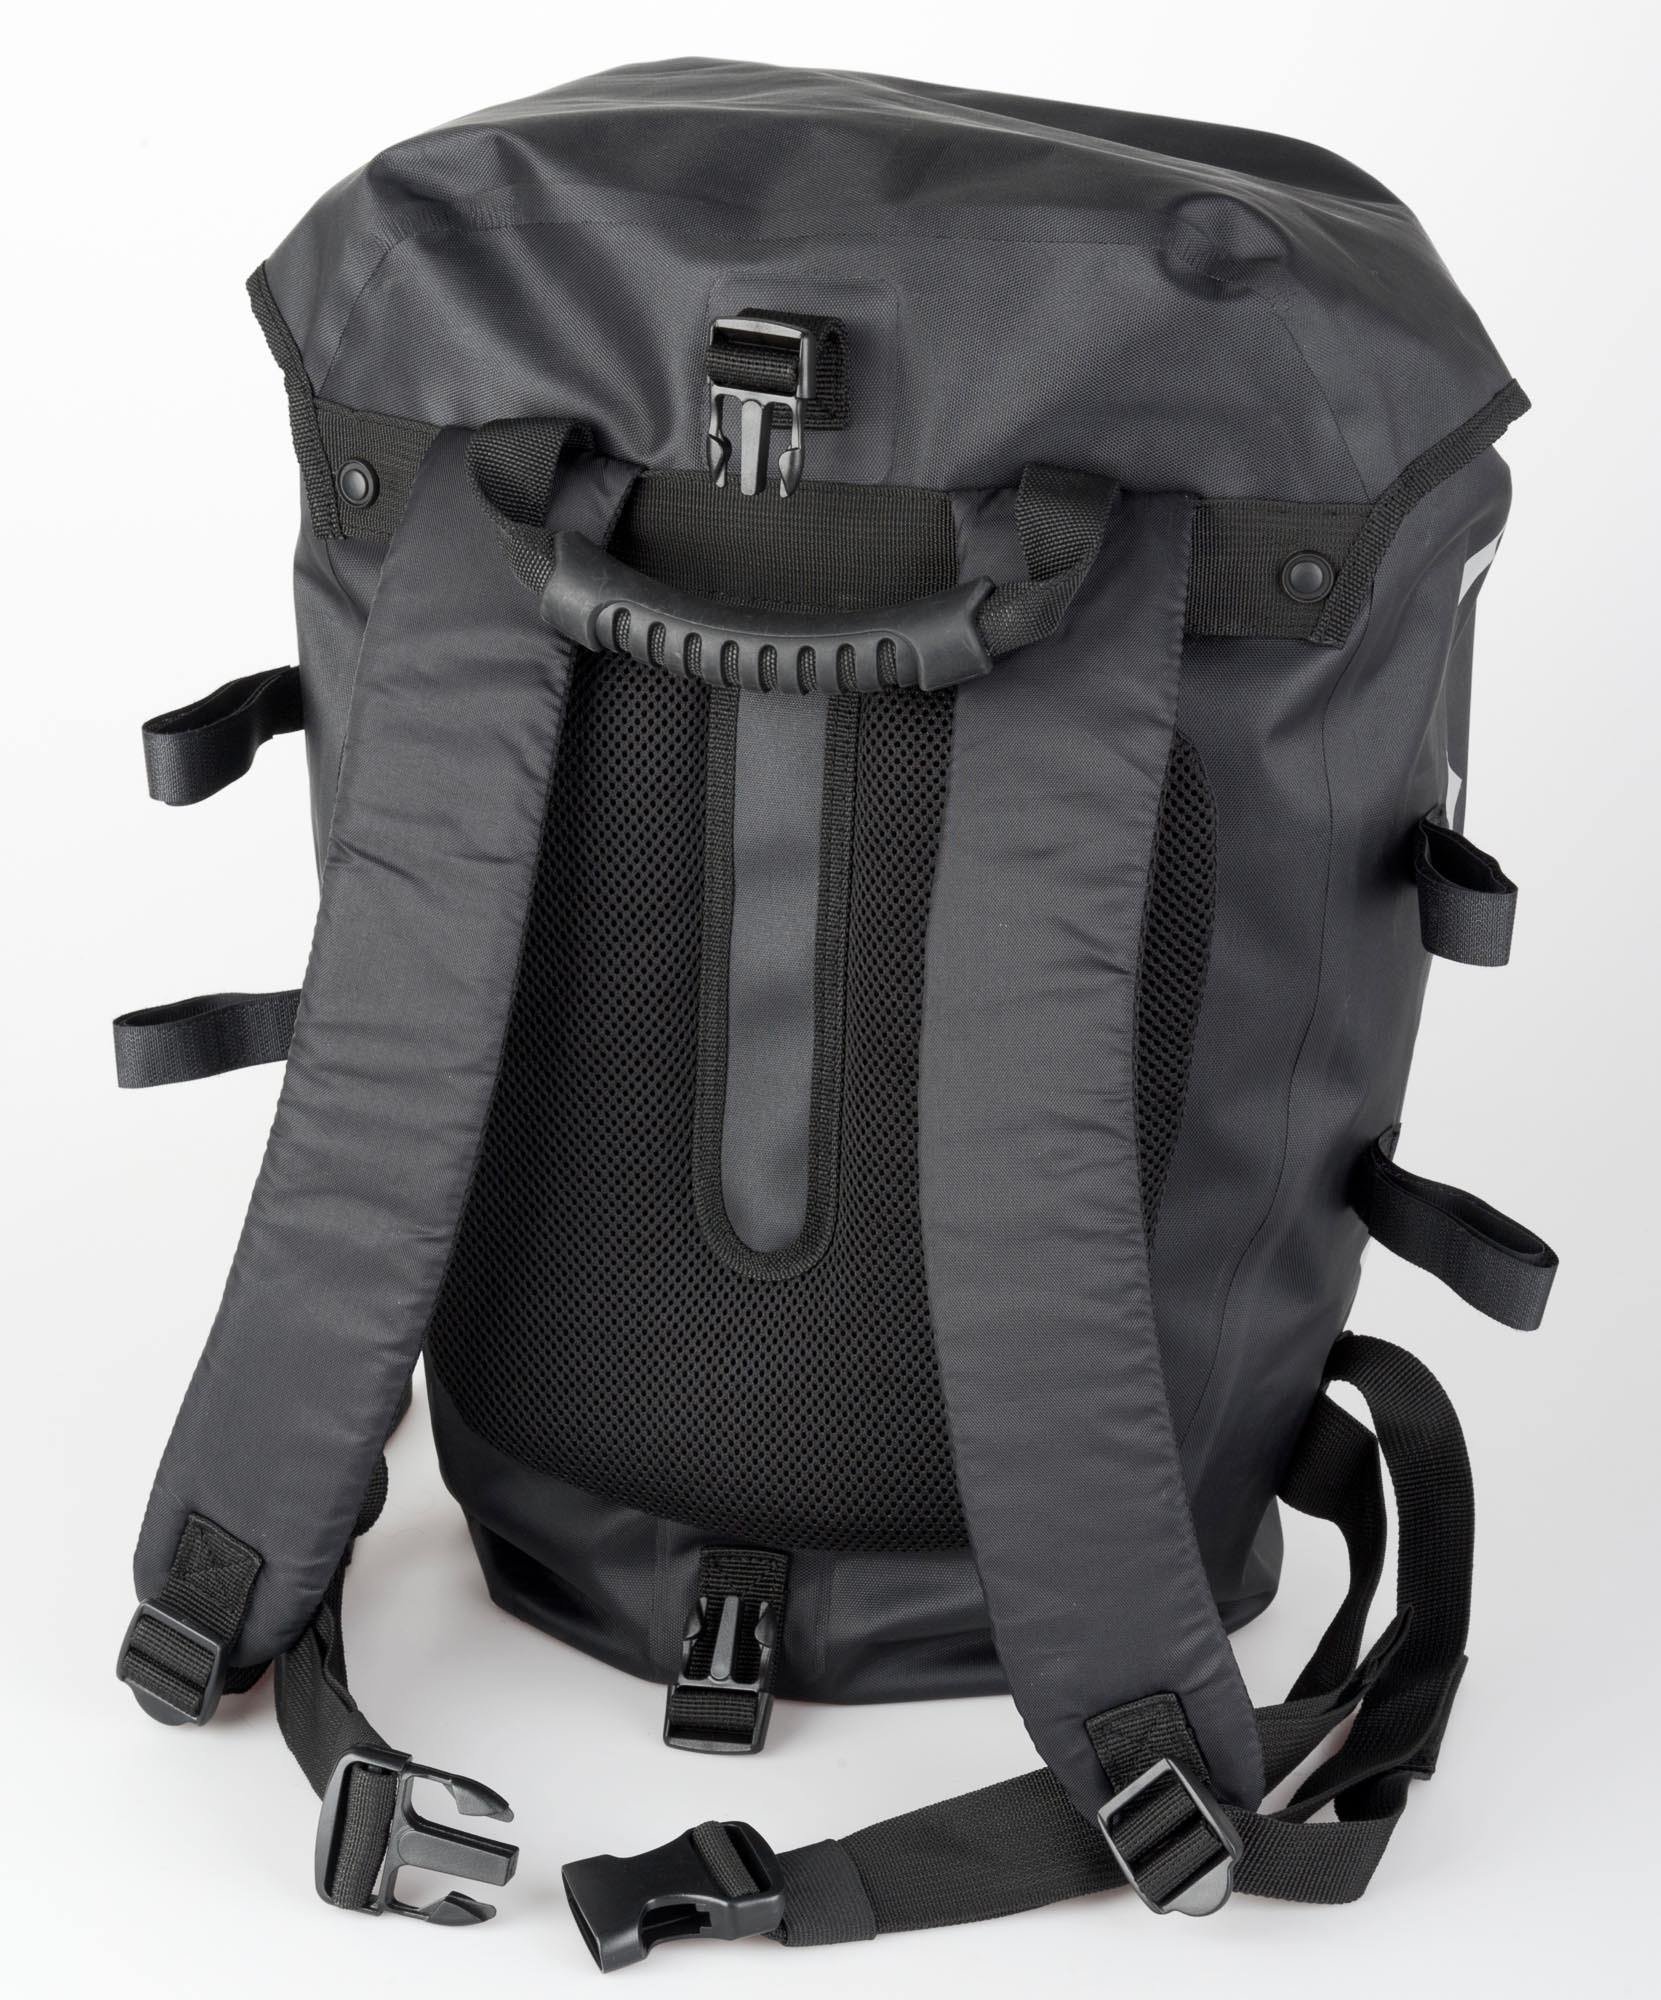 foxline fahrradrucksack rucksack fahrradtasche wasserdicht schwarz graphit ebay. Black Bedroom Furniture Sets. Home Design Ideas